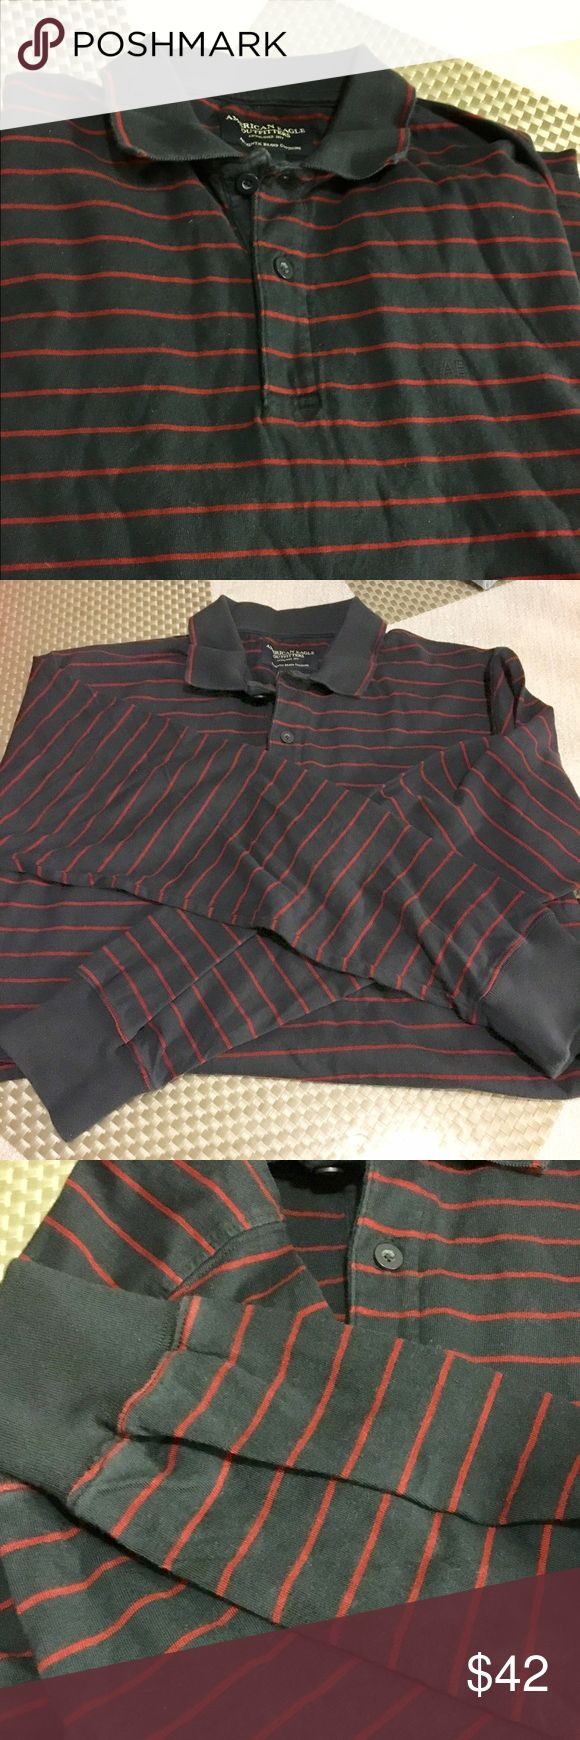 American eagle men's  long sleeves polo American eagle like new  men's long sleeves polo style. Navy blue with thin red stripes. Absolutely in excellent condition. Soft gorgeous warm fabric American Eagle Outfitters Shirts Polos